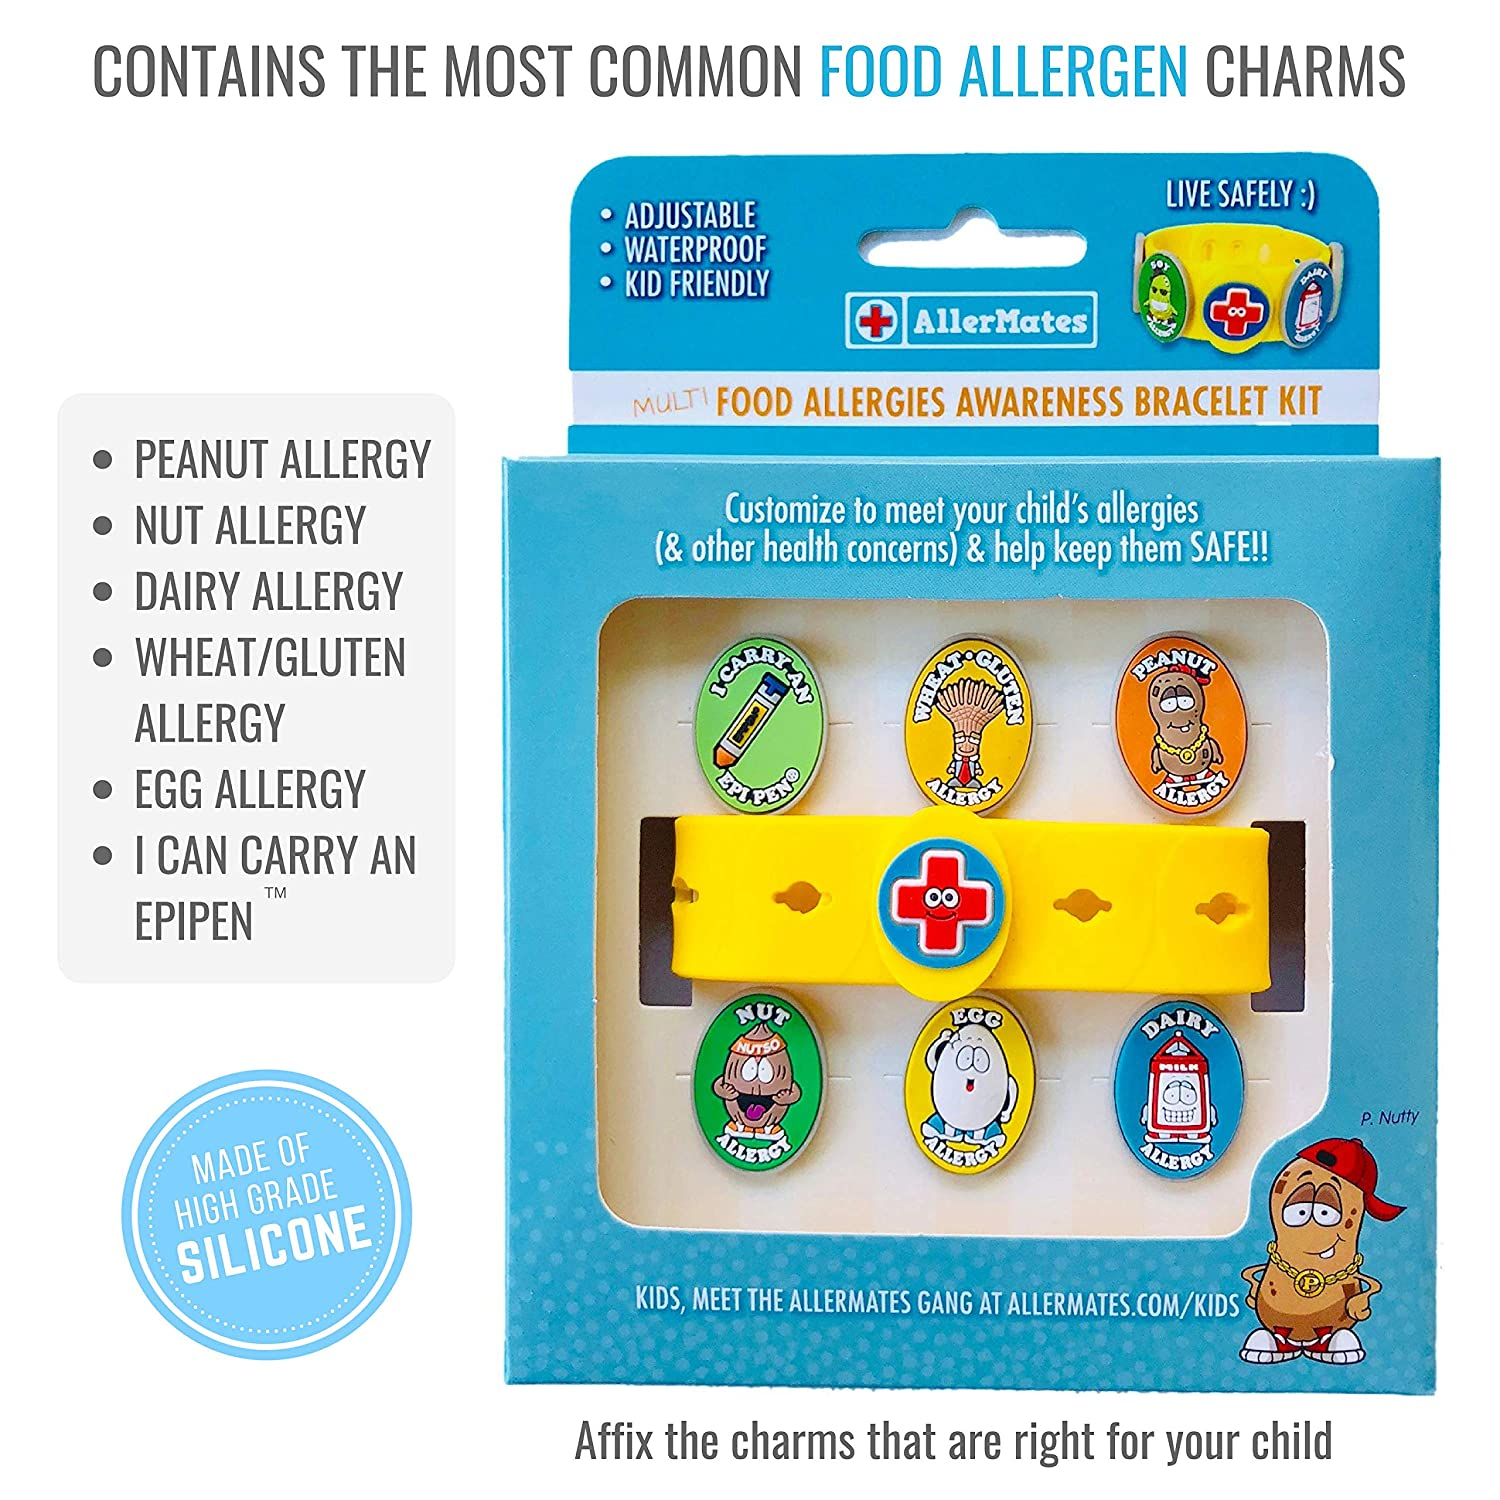 4d683bd80 Amazon.com: Food Allergy Bracelets for Kids – Bright, Fun Medical Charm Kit:  Yellow Silicone Bracelet, Multiple Food Allergy Charms: Peanut, Nut, Dairy,  ...